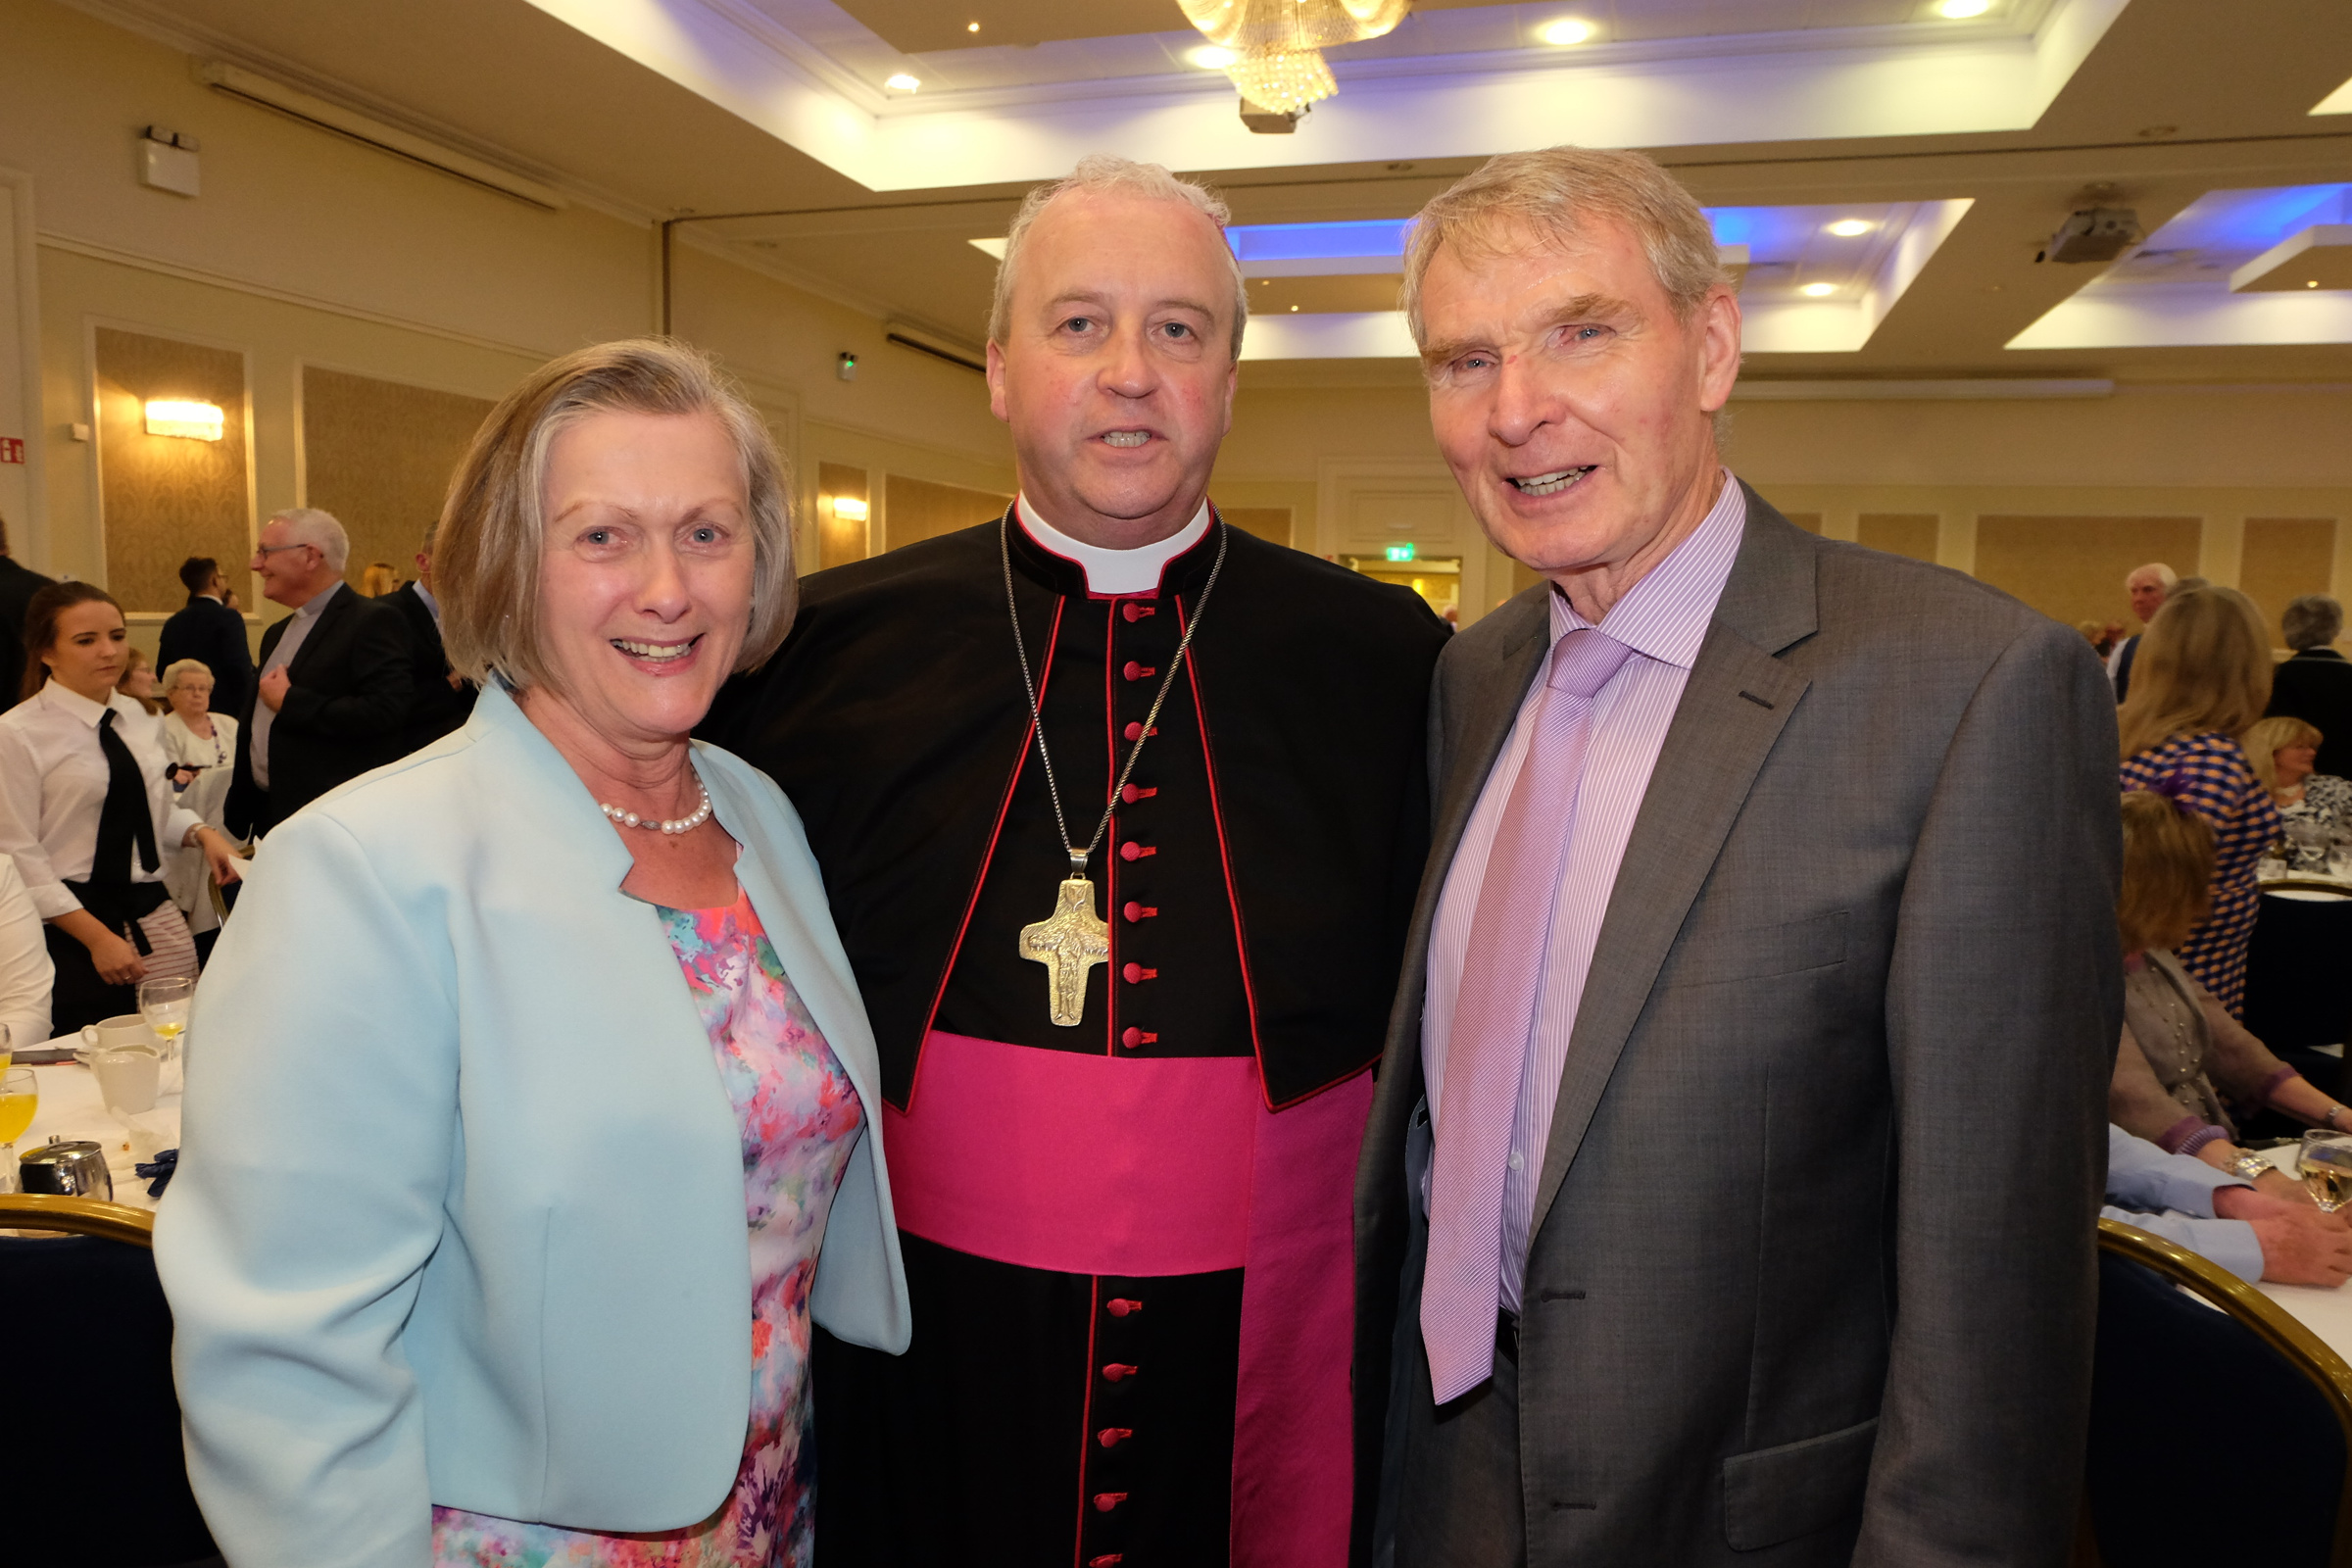 Tom and Kathleen McCreesh with the new Bishop Michael Router at a celebration dinner following the Bishop's Ordination